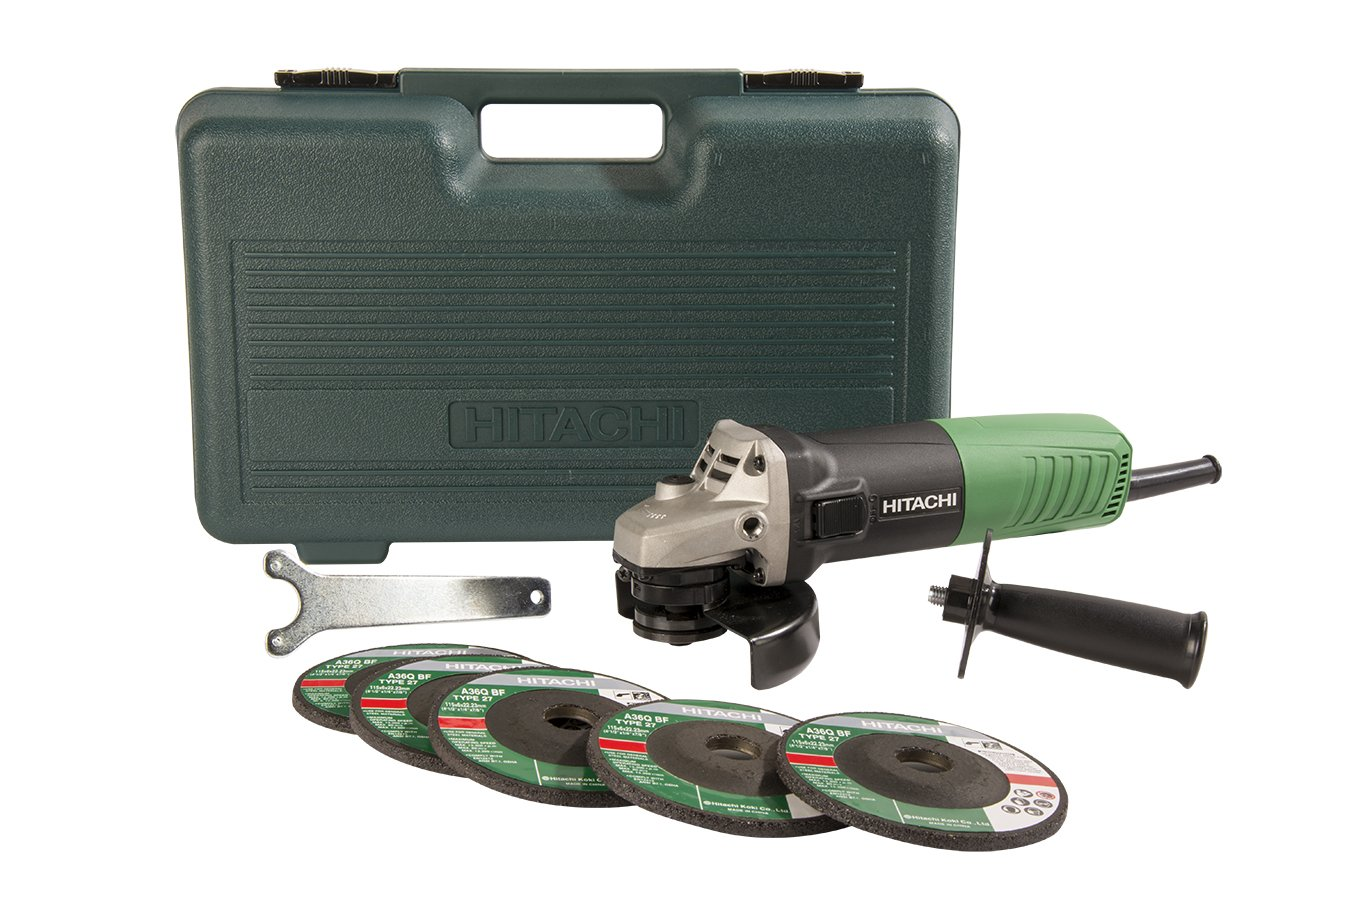 Hitachi G12SR4 6.2-Amp 4-1/2-Inch Angle Grinder with 5 Abrasive Wheels by Hitachi (Image #1)